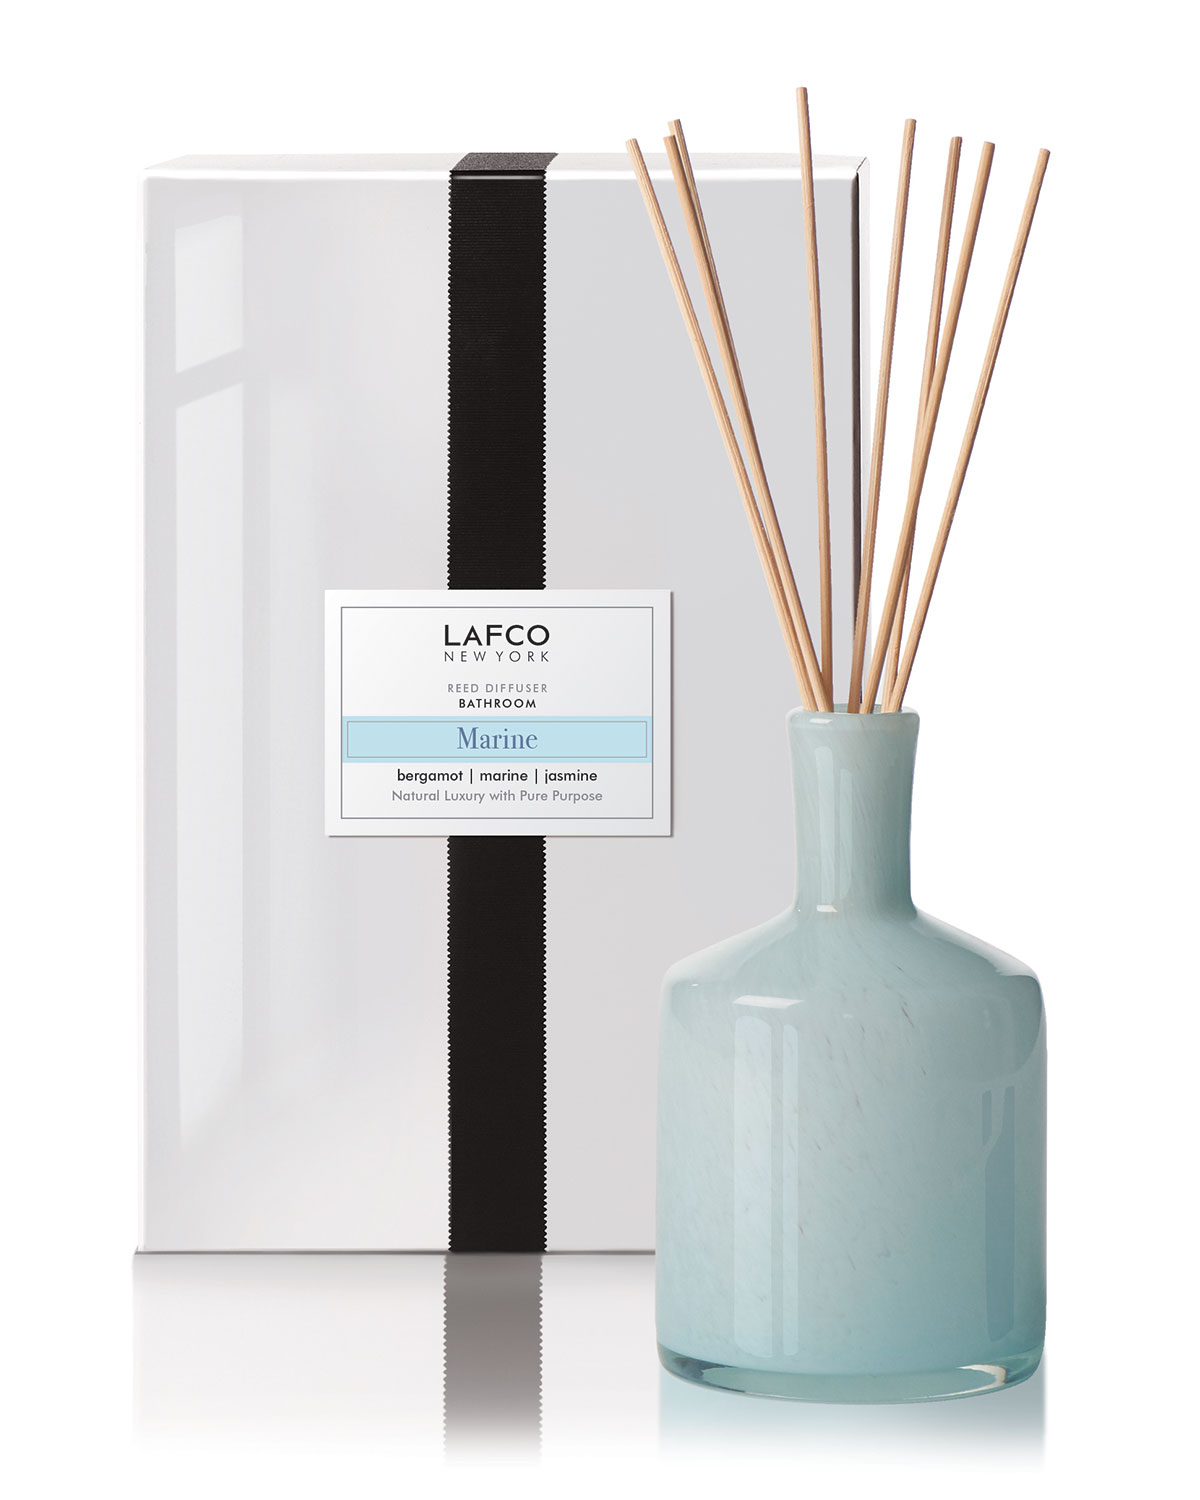 Lafco Marine Reed Diffuser – Bathroom, 15 oz./ 444 mL